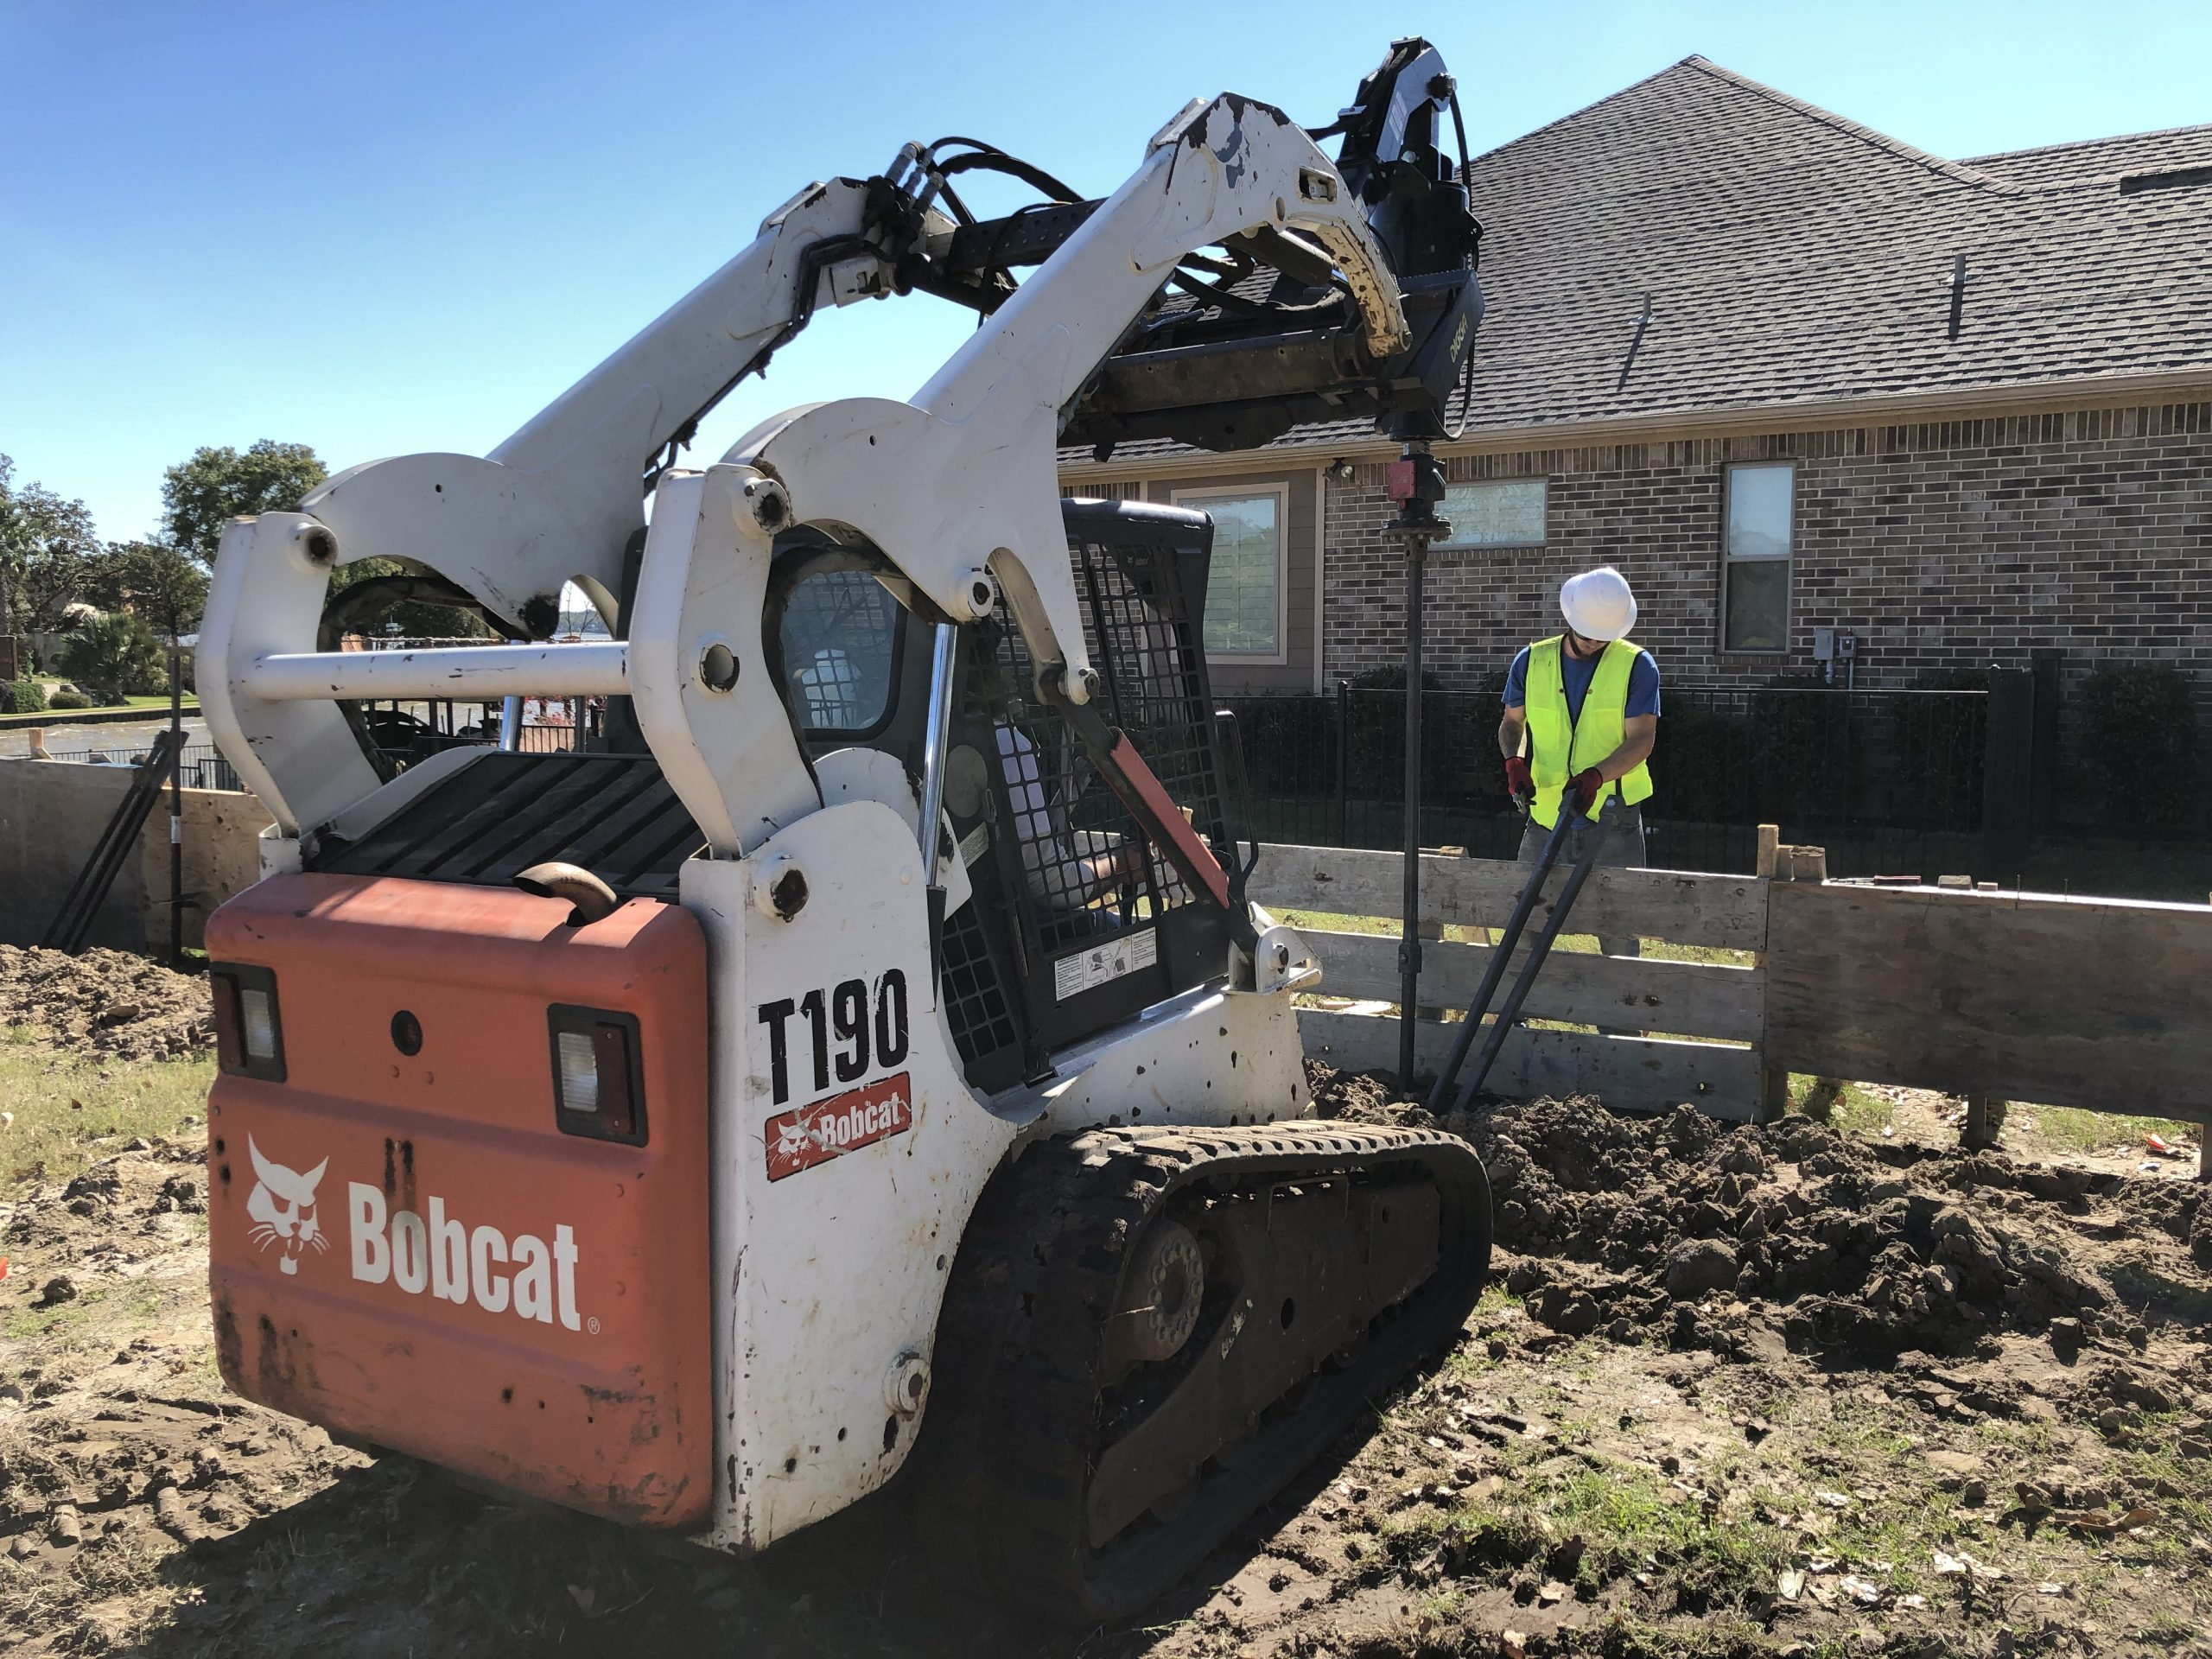 helical pier installation new construction screw piles residential commercial shreveport louisiana best companies near me services 5